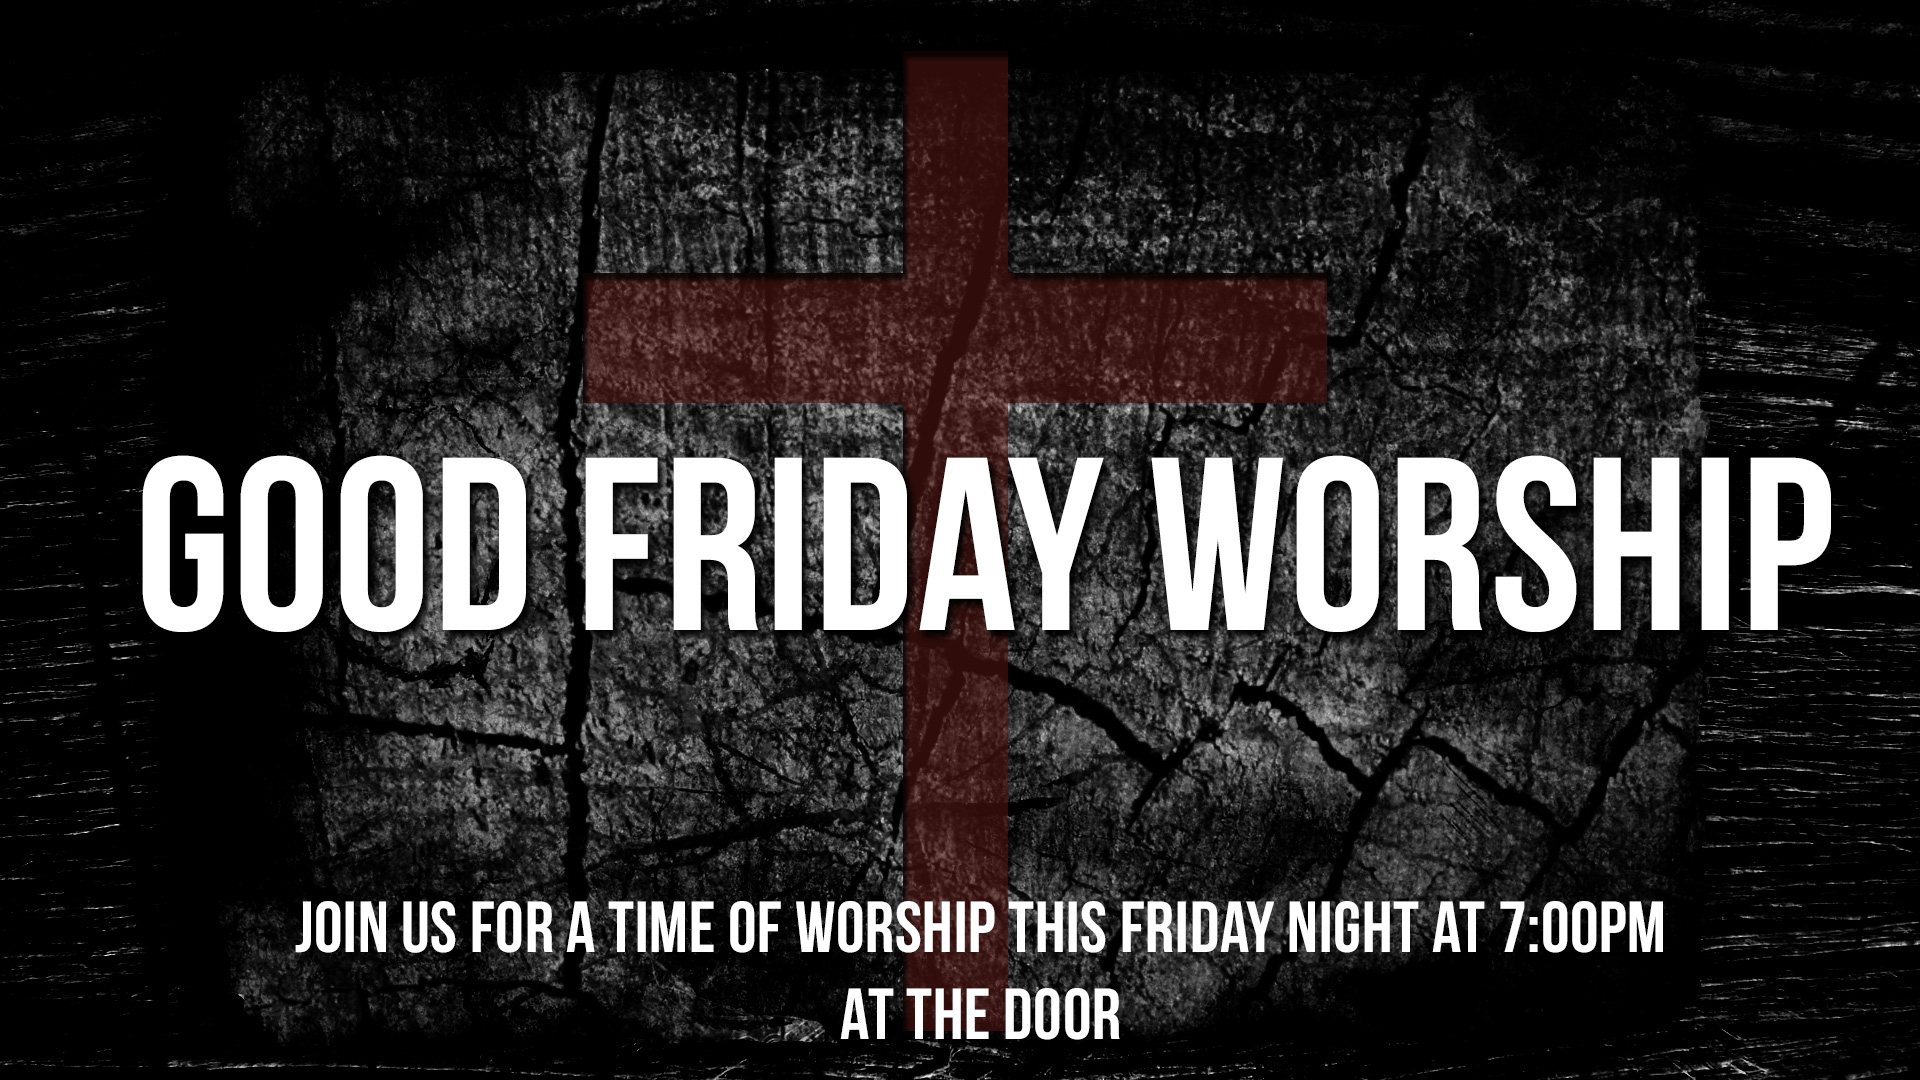 Good Friday Worship at The Door